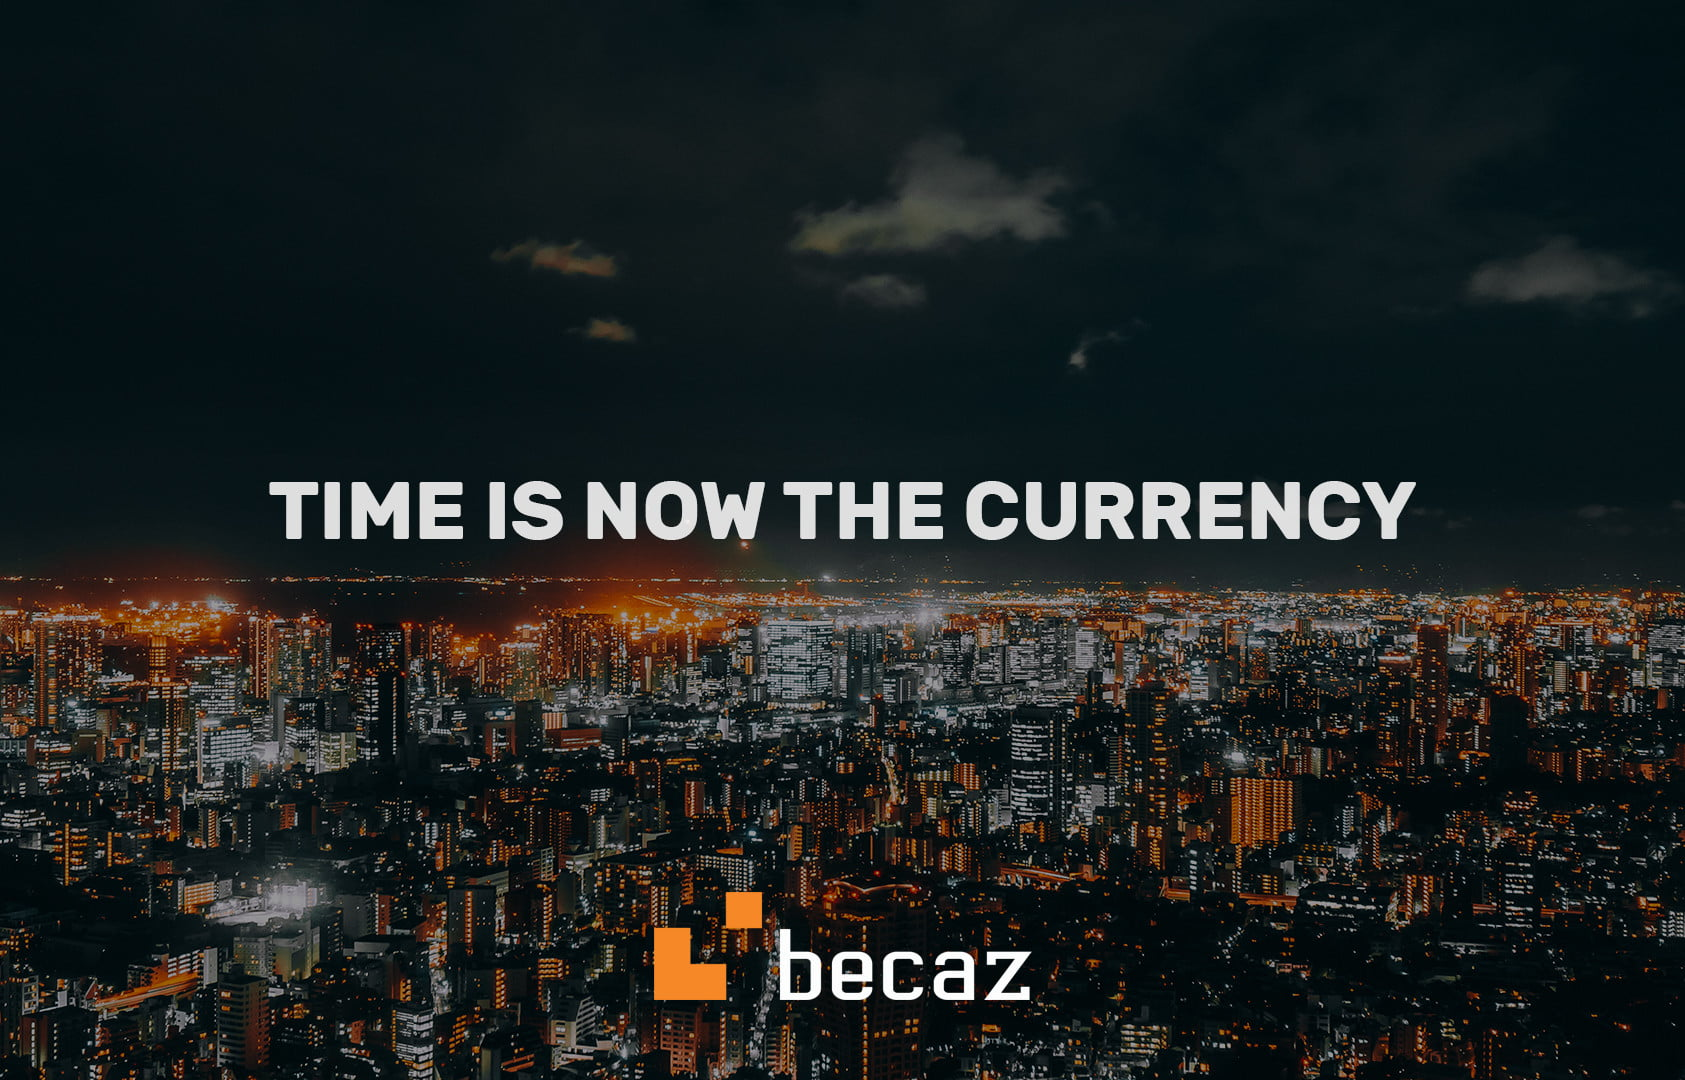 becaz - It finally happened: Time is a Currency Now!